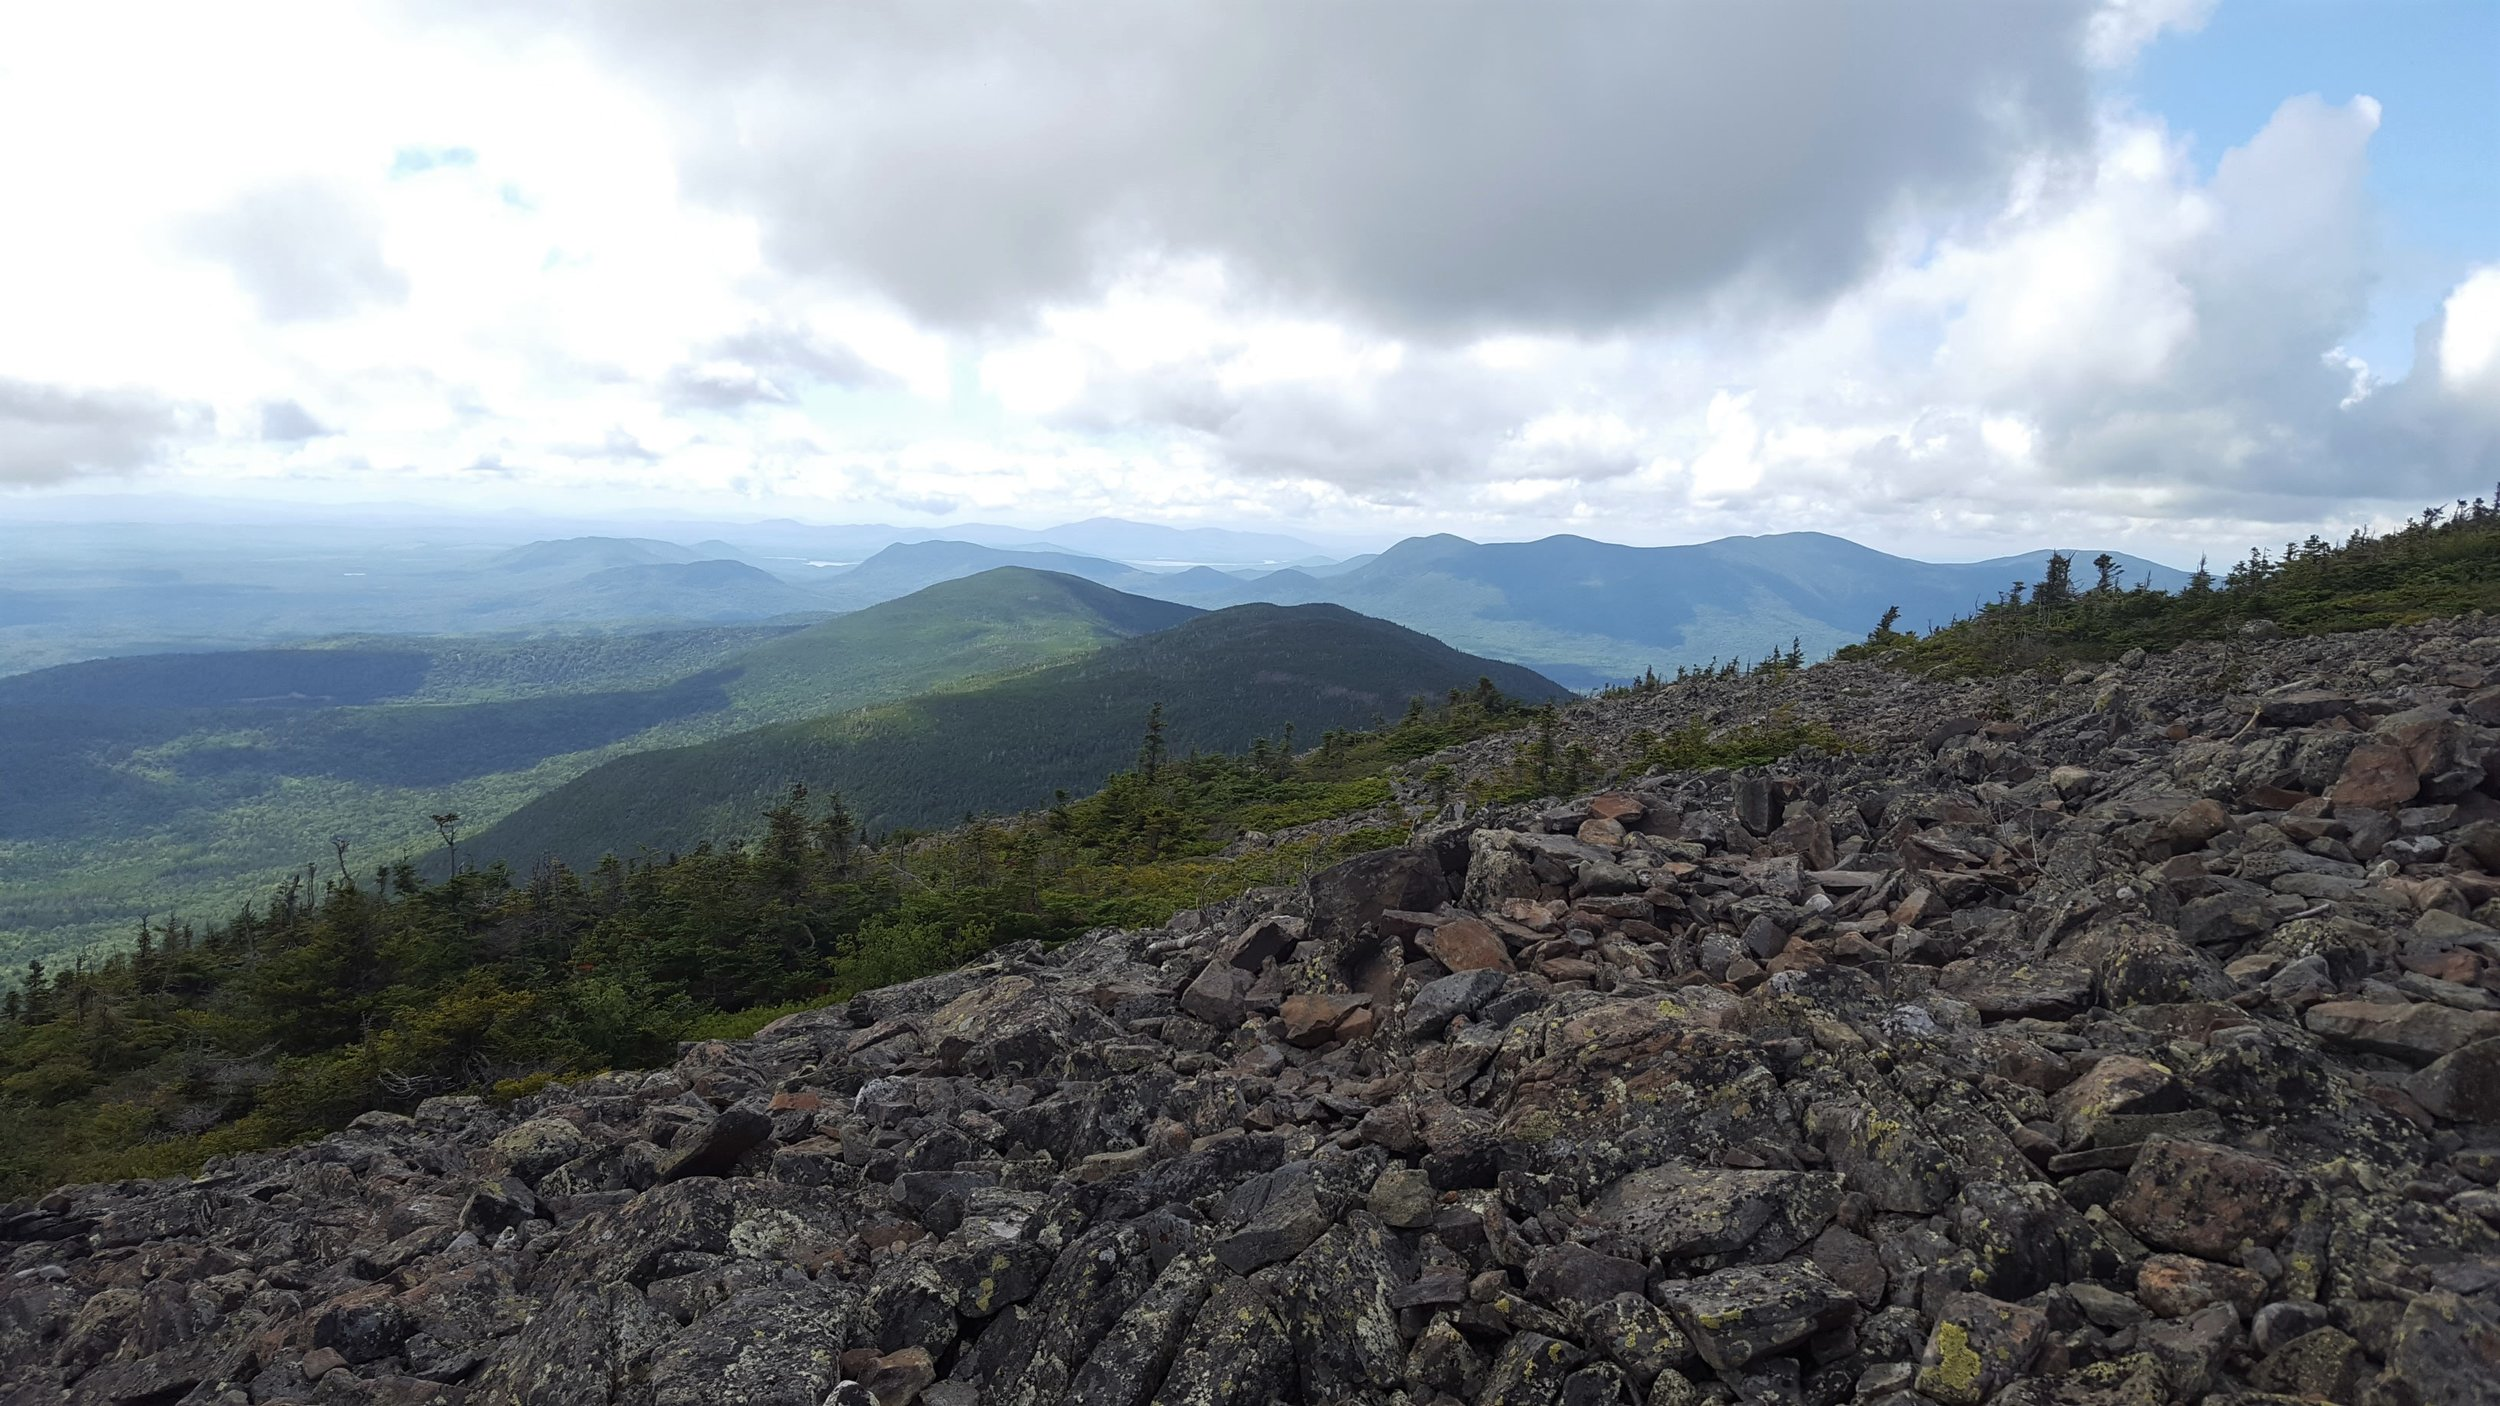 The view west from the summit. Looking across Hay and Gulf Hagas Mountains to the Lily Bay Mountains